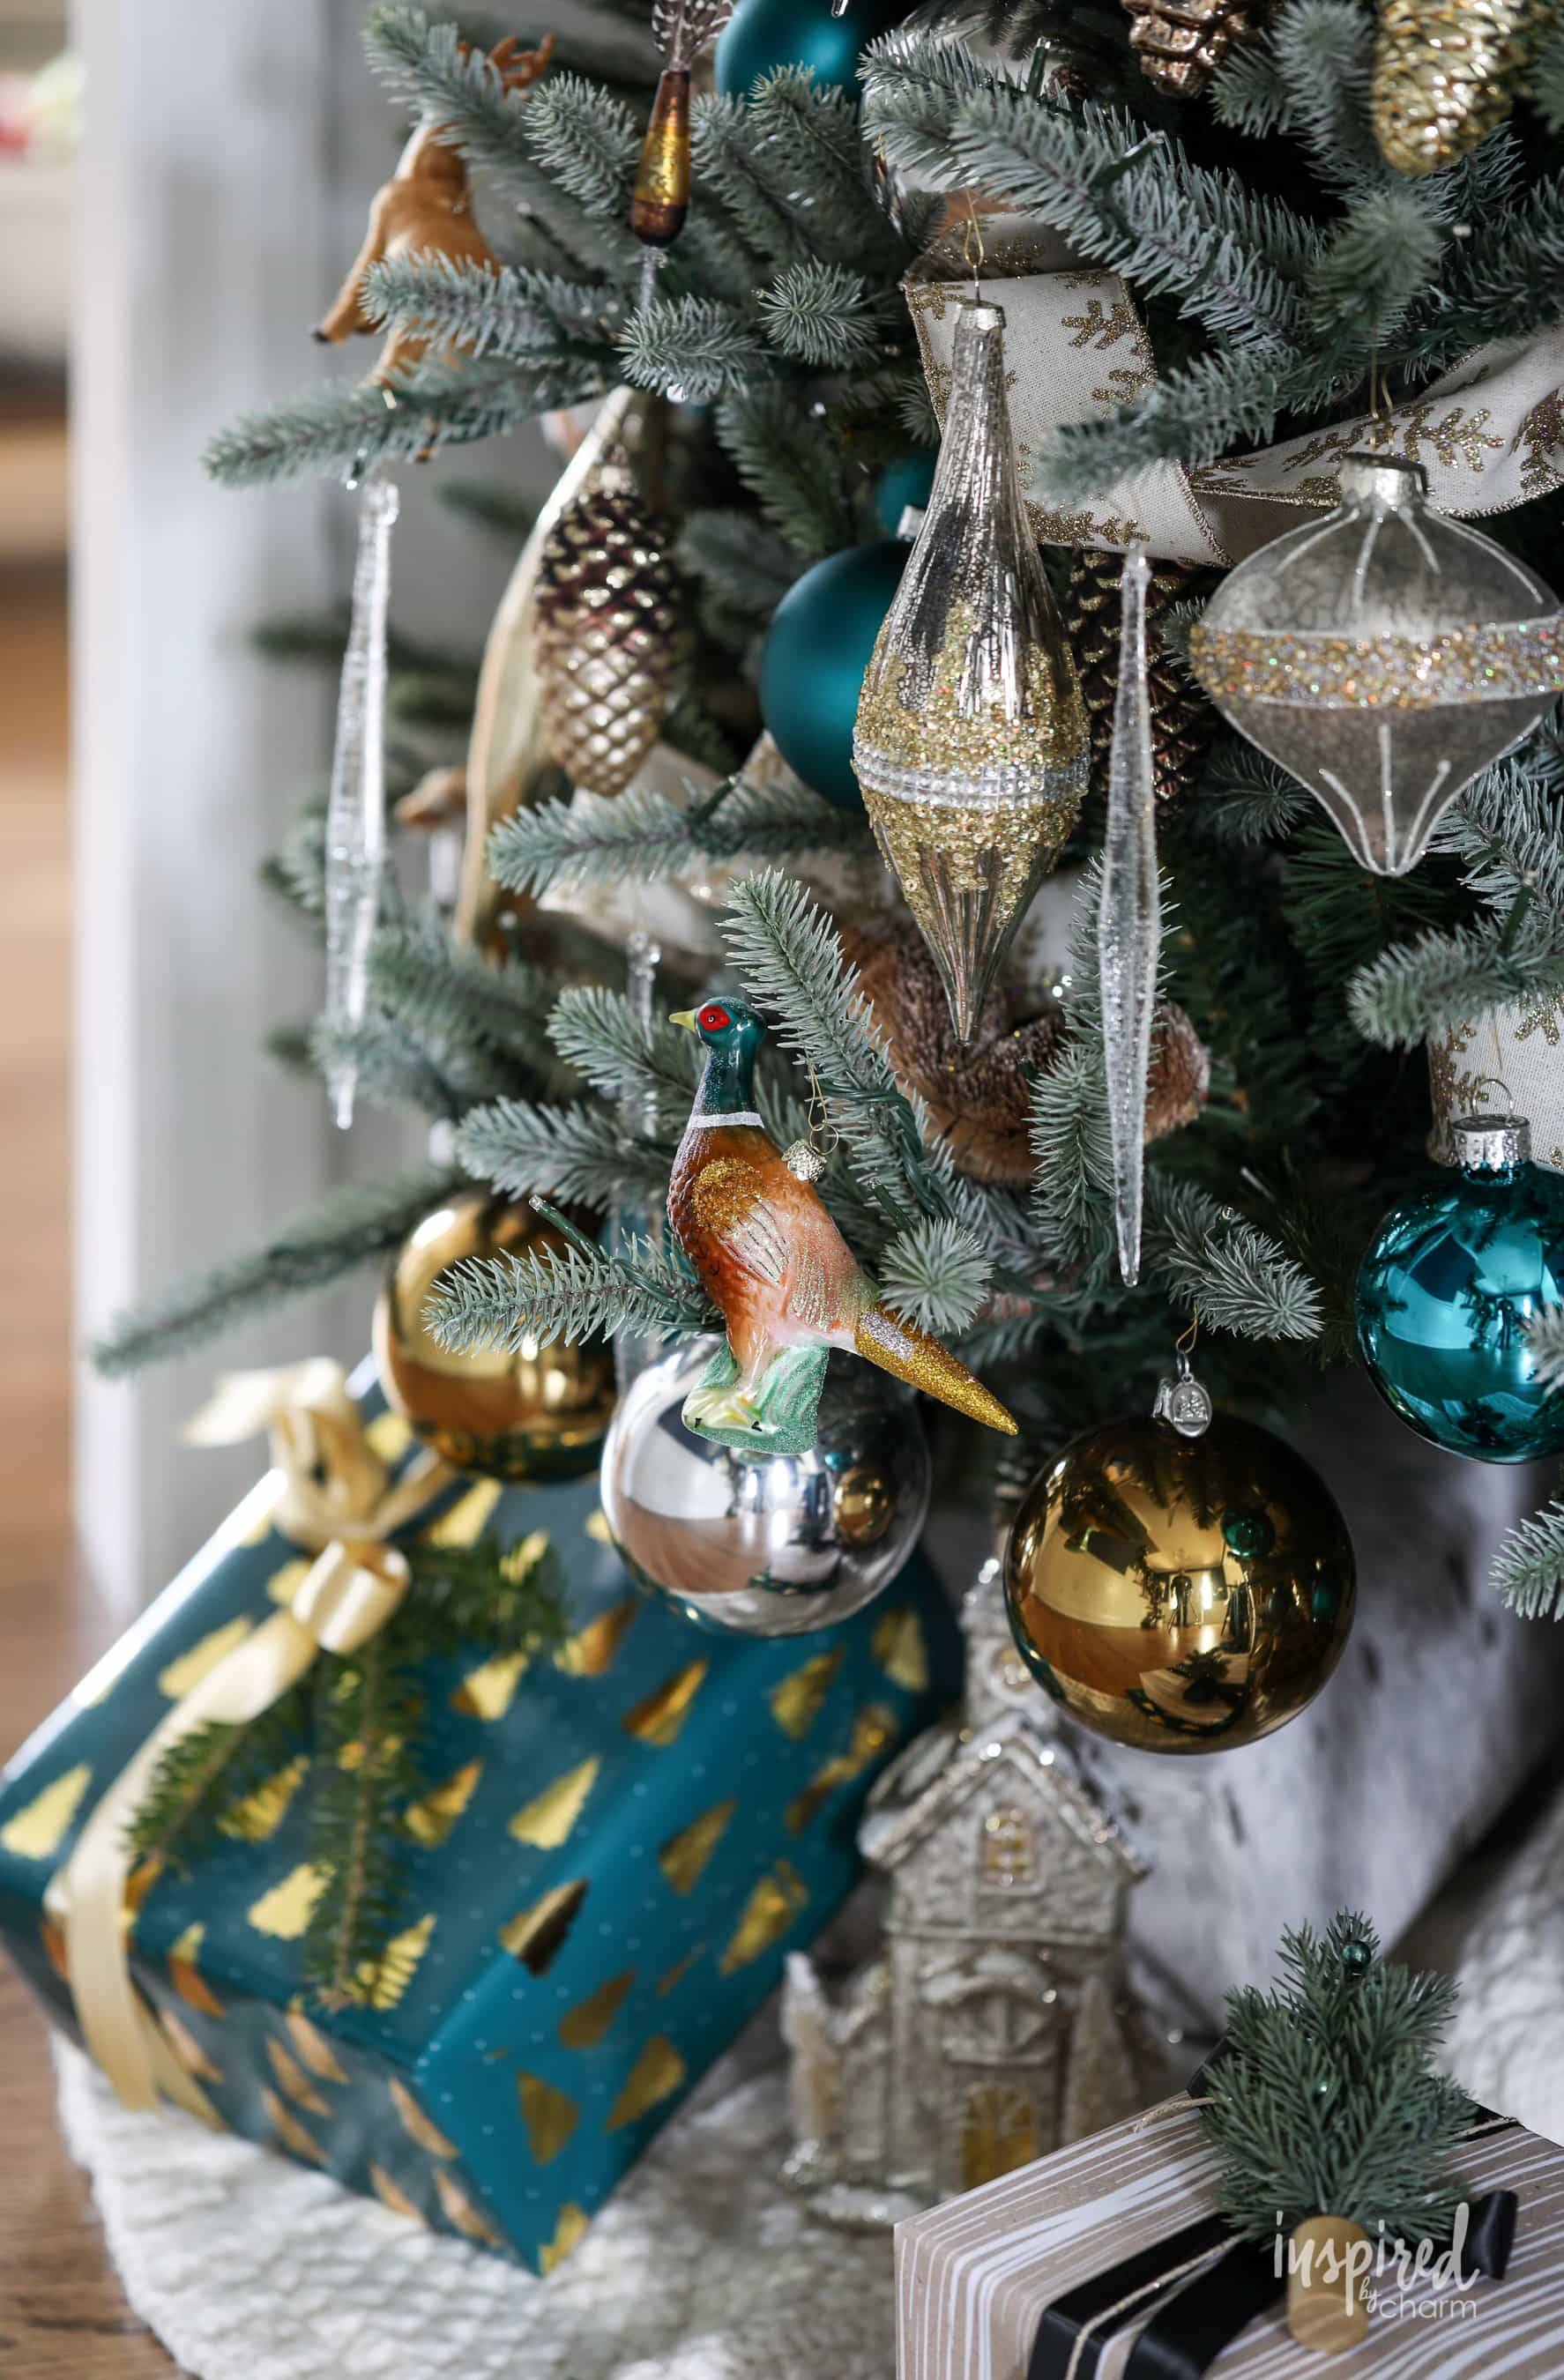 How to Decorate a Woodland Glam Christmas Tree #woodland #glam #christmas #tree #decor #holiday #decorating #christmastree